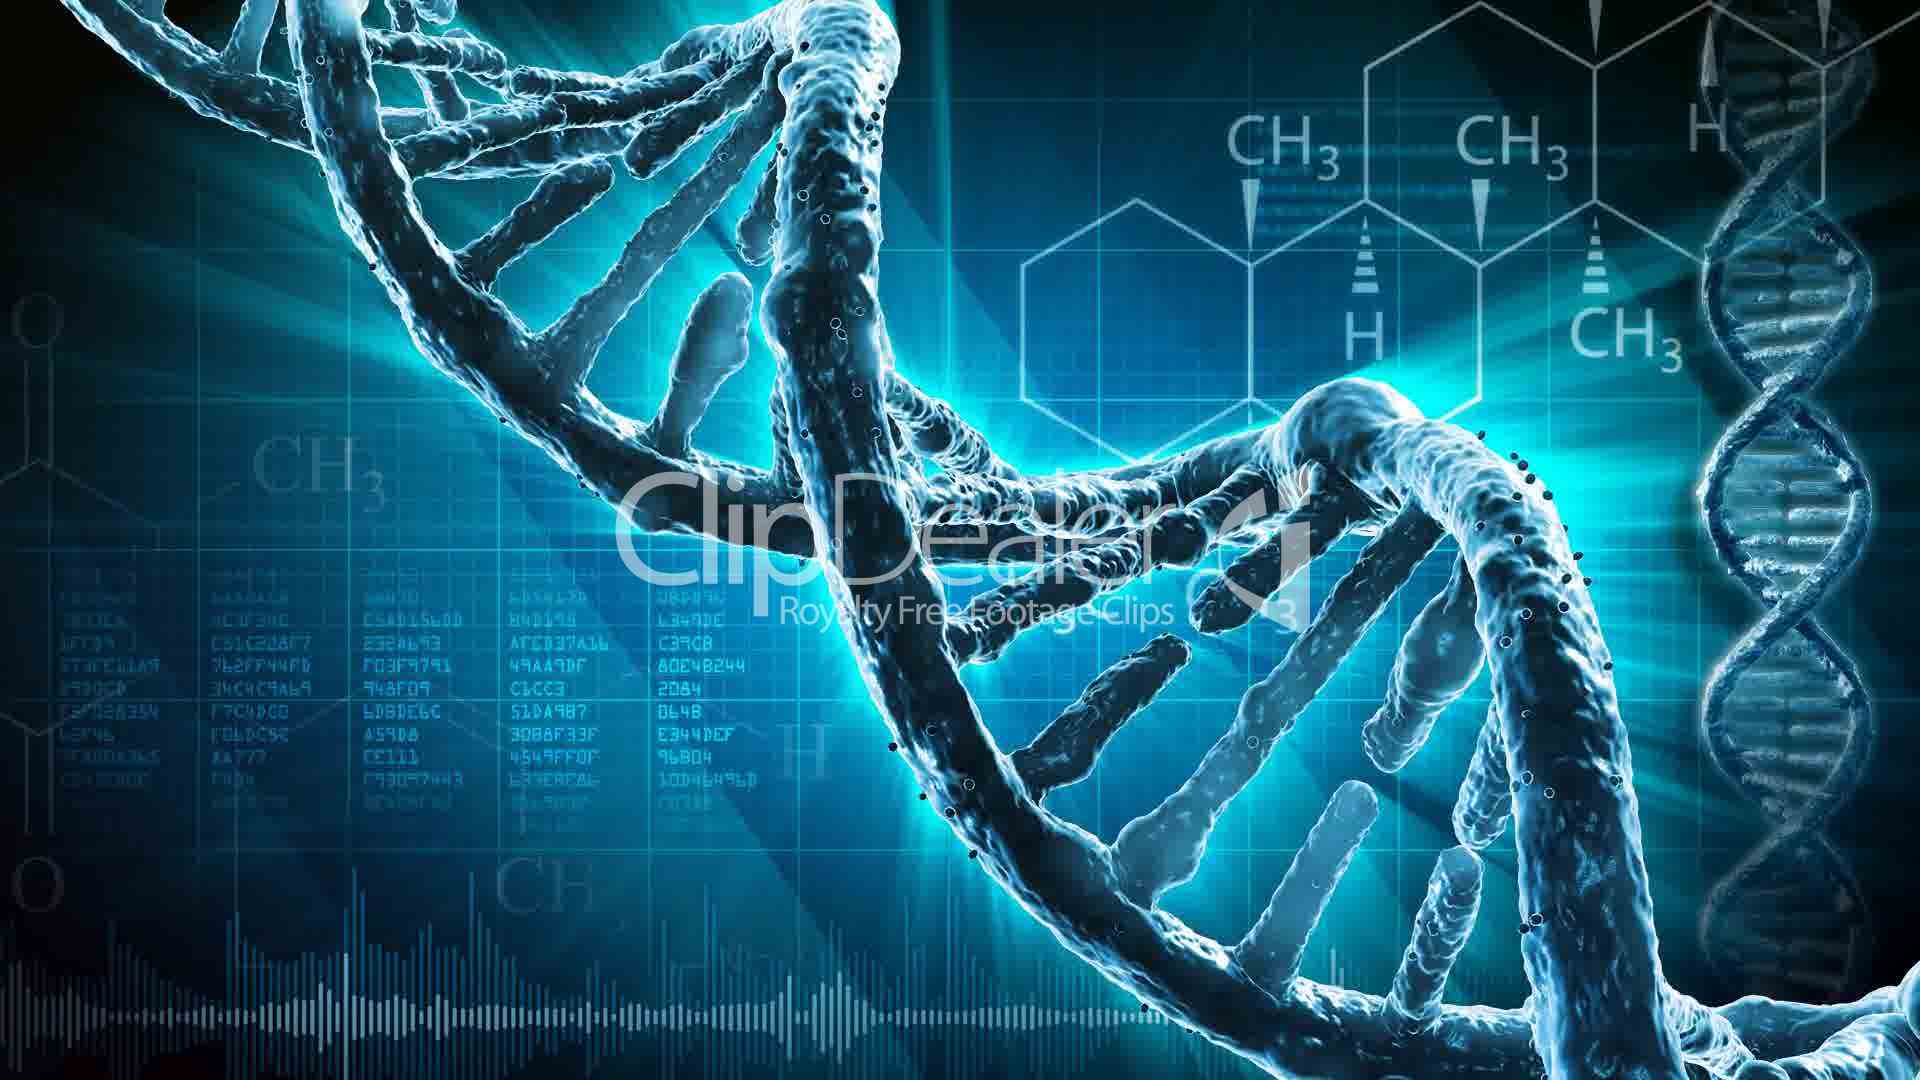 3d Virus Wallpaper Dna Strand Royalty Free Video And Stock Footage